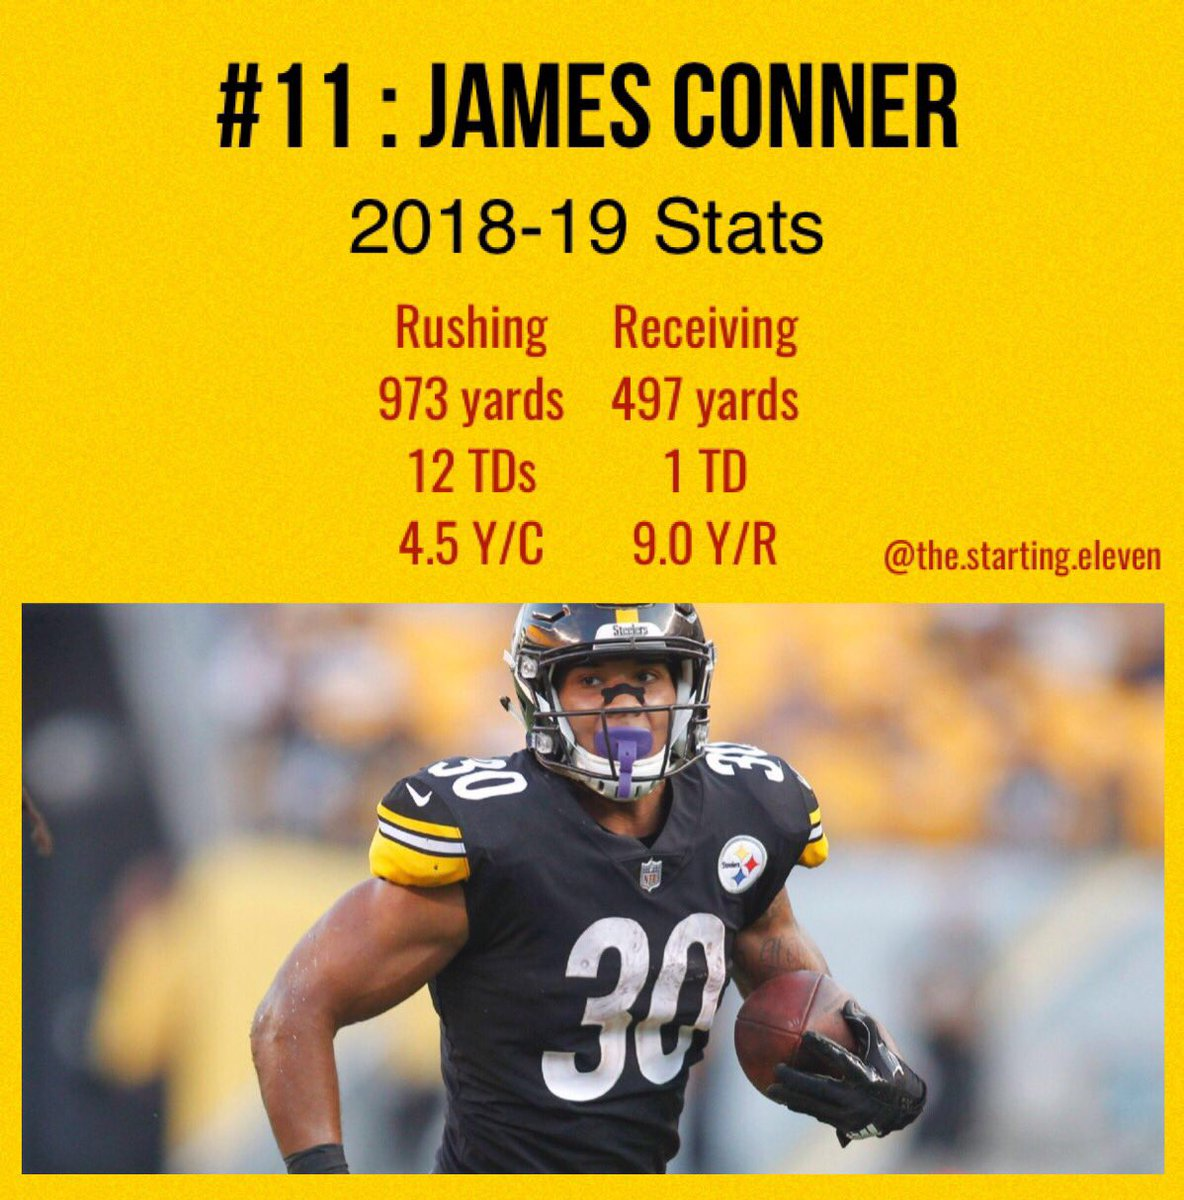 bdce5540db0 At 11, is #Steelers RB James Conner. Can he rush for 1000 yards?  #TheStarting11 #NFL #JamesConner pic.twitter.com/FJvPvkqVWr